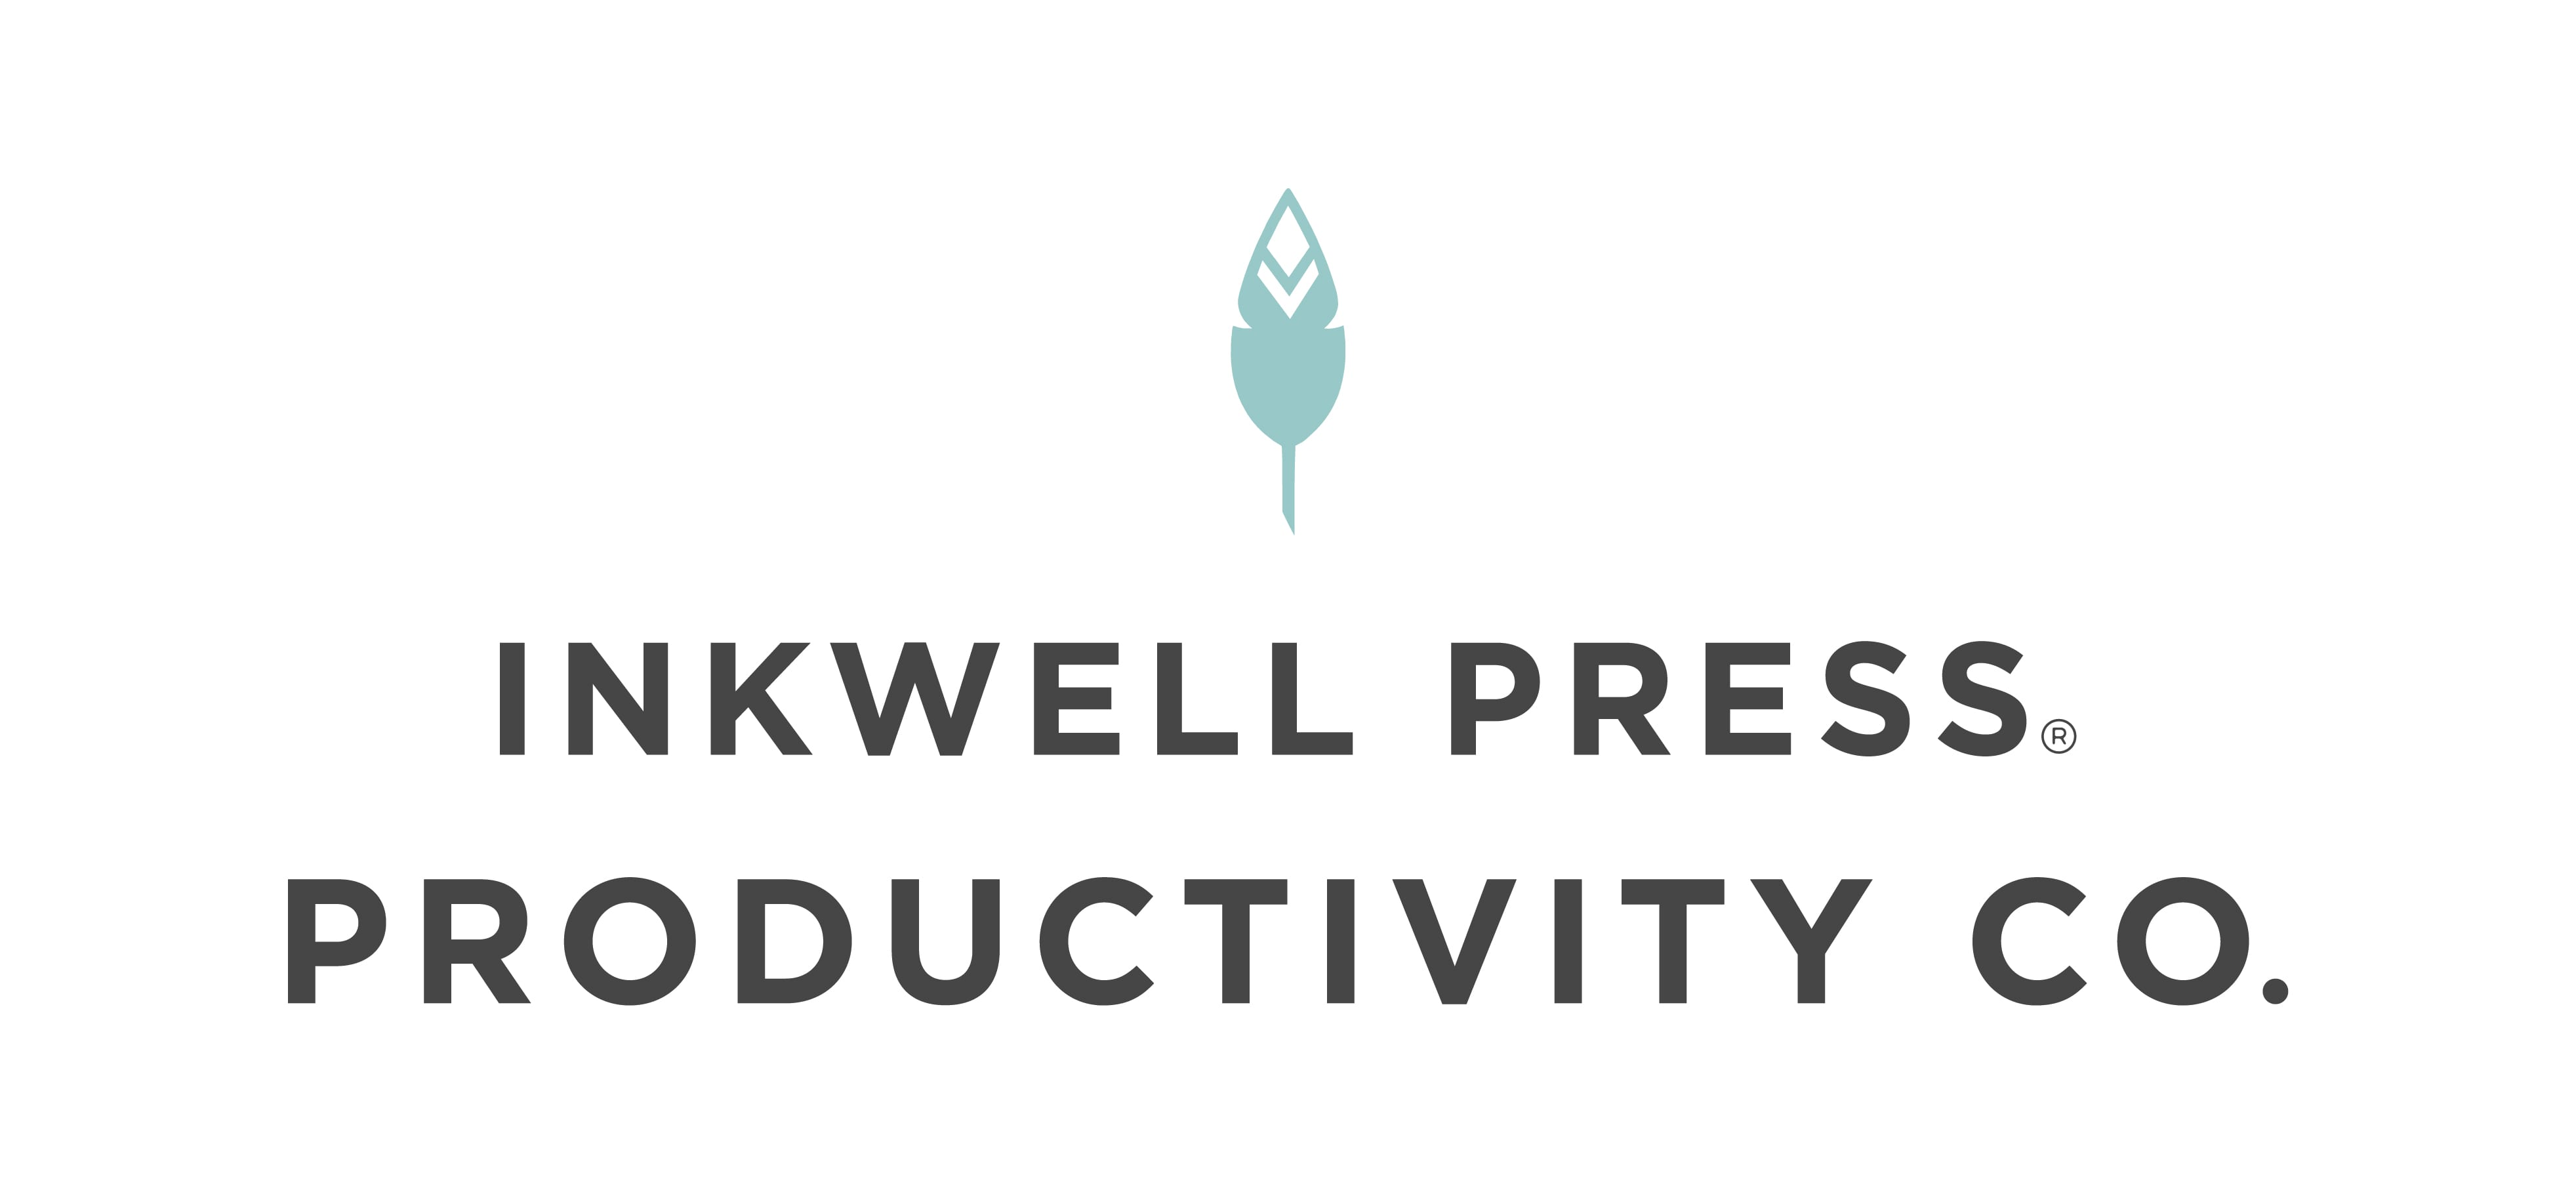 Inkwell Press Productivity Co.